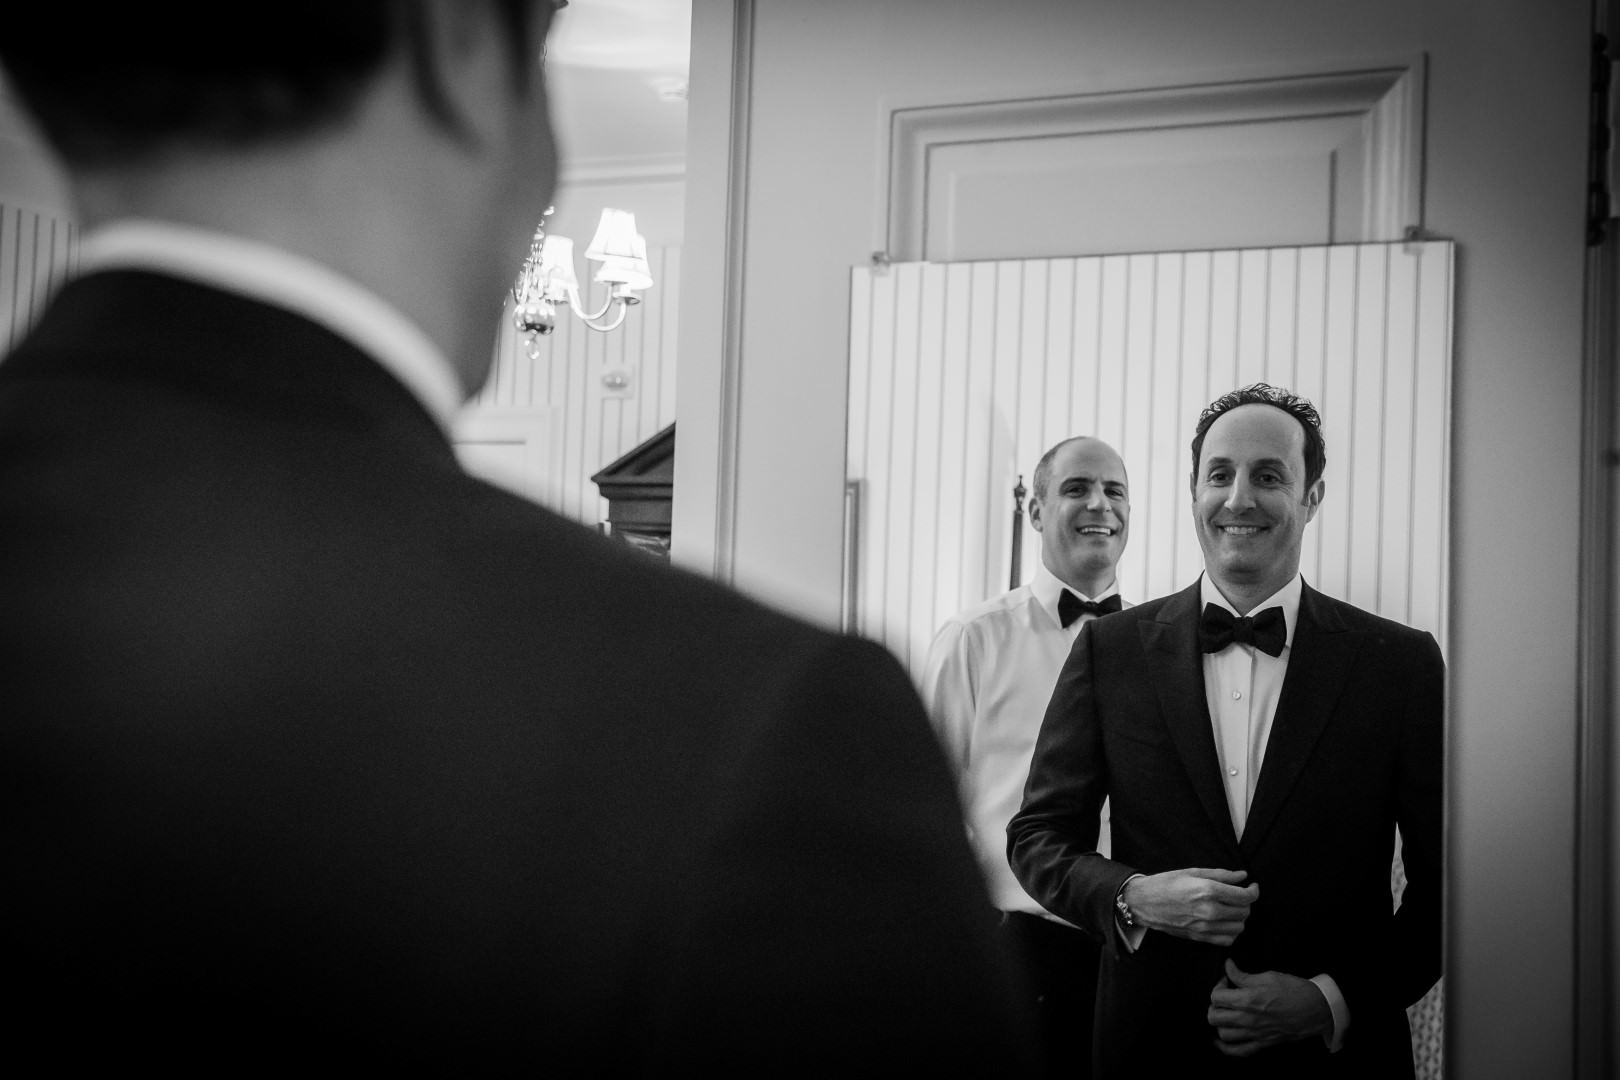 new york city wedding photography photographer photo groom getting ready looking mirror reflection